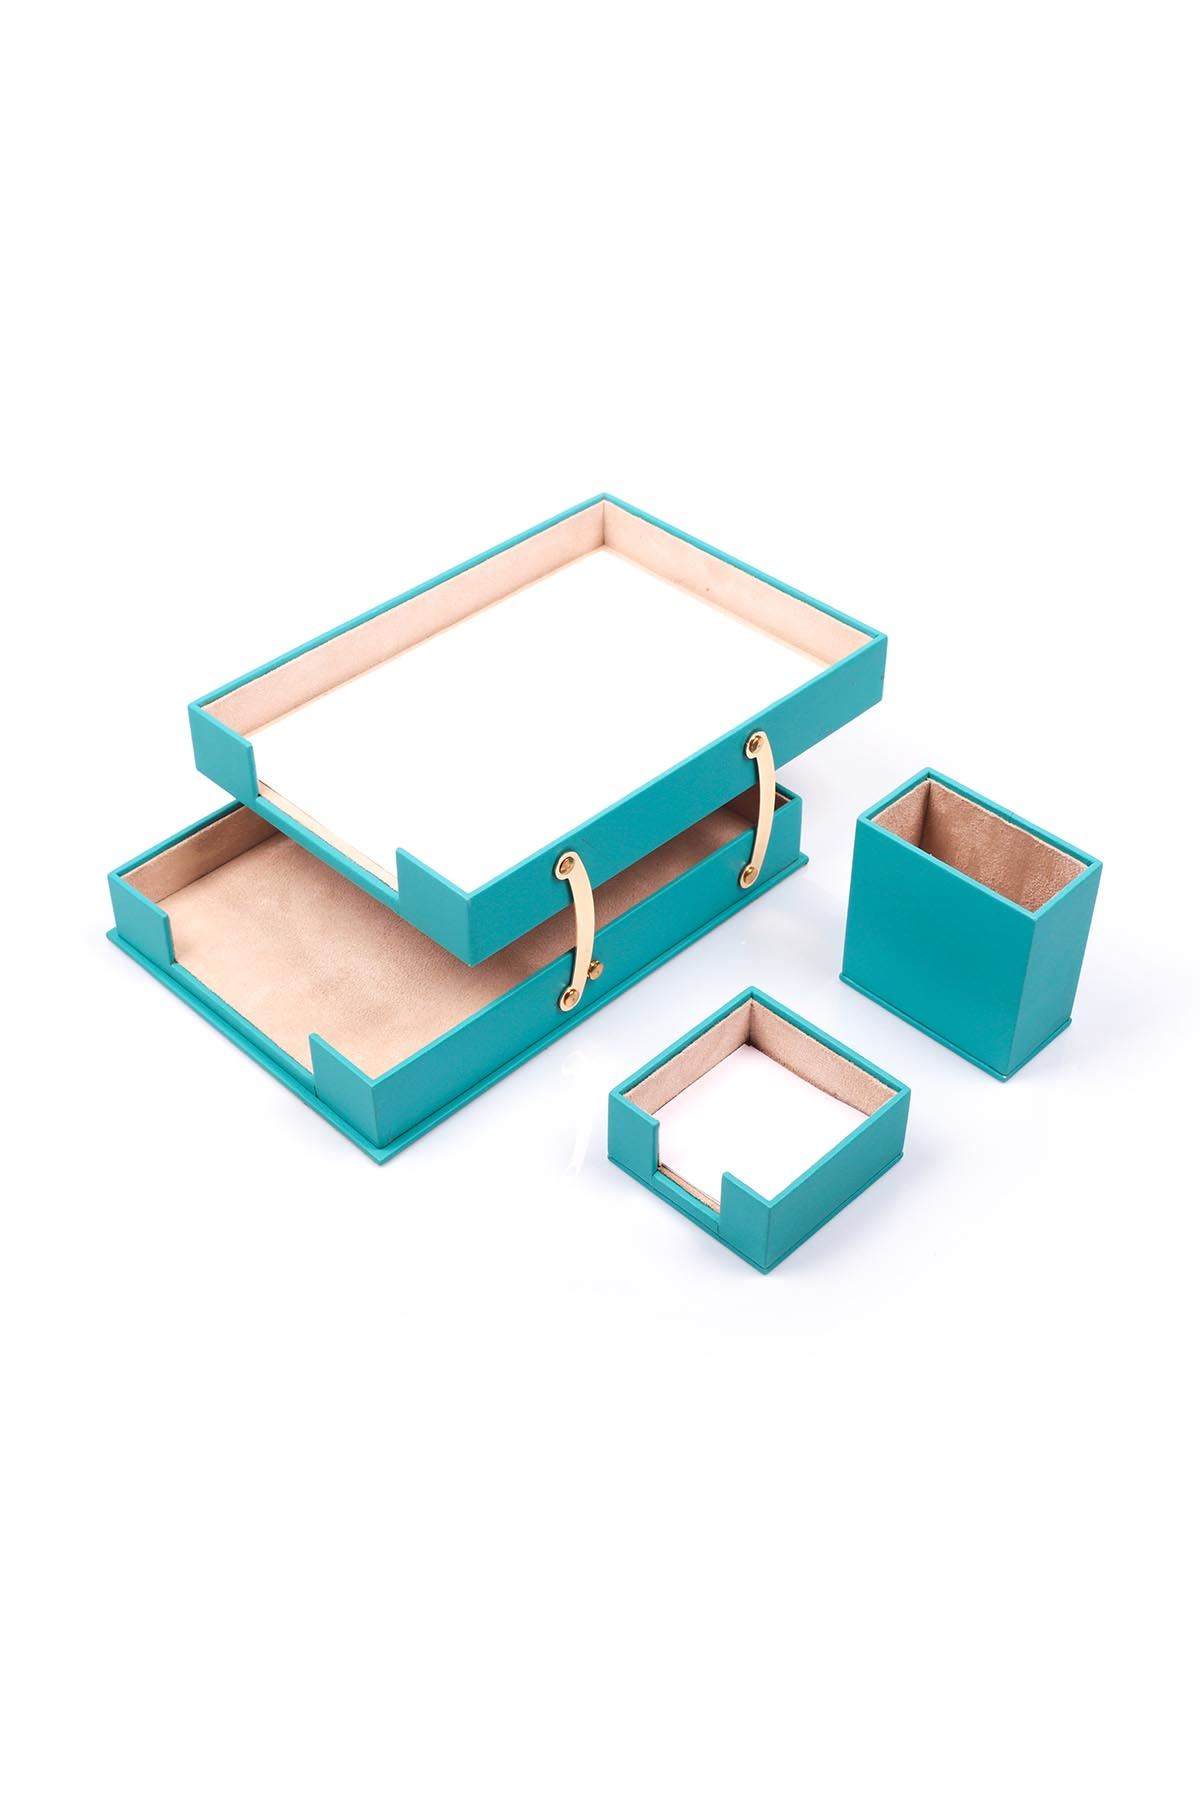 Double Document Tray With 2 Accessories Turquise| Desk Set Accessories | Desktop Accessories | Desk Accessories | Desk Organizers